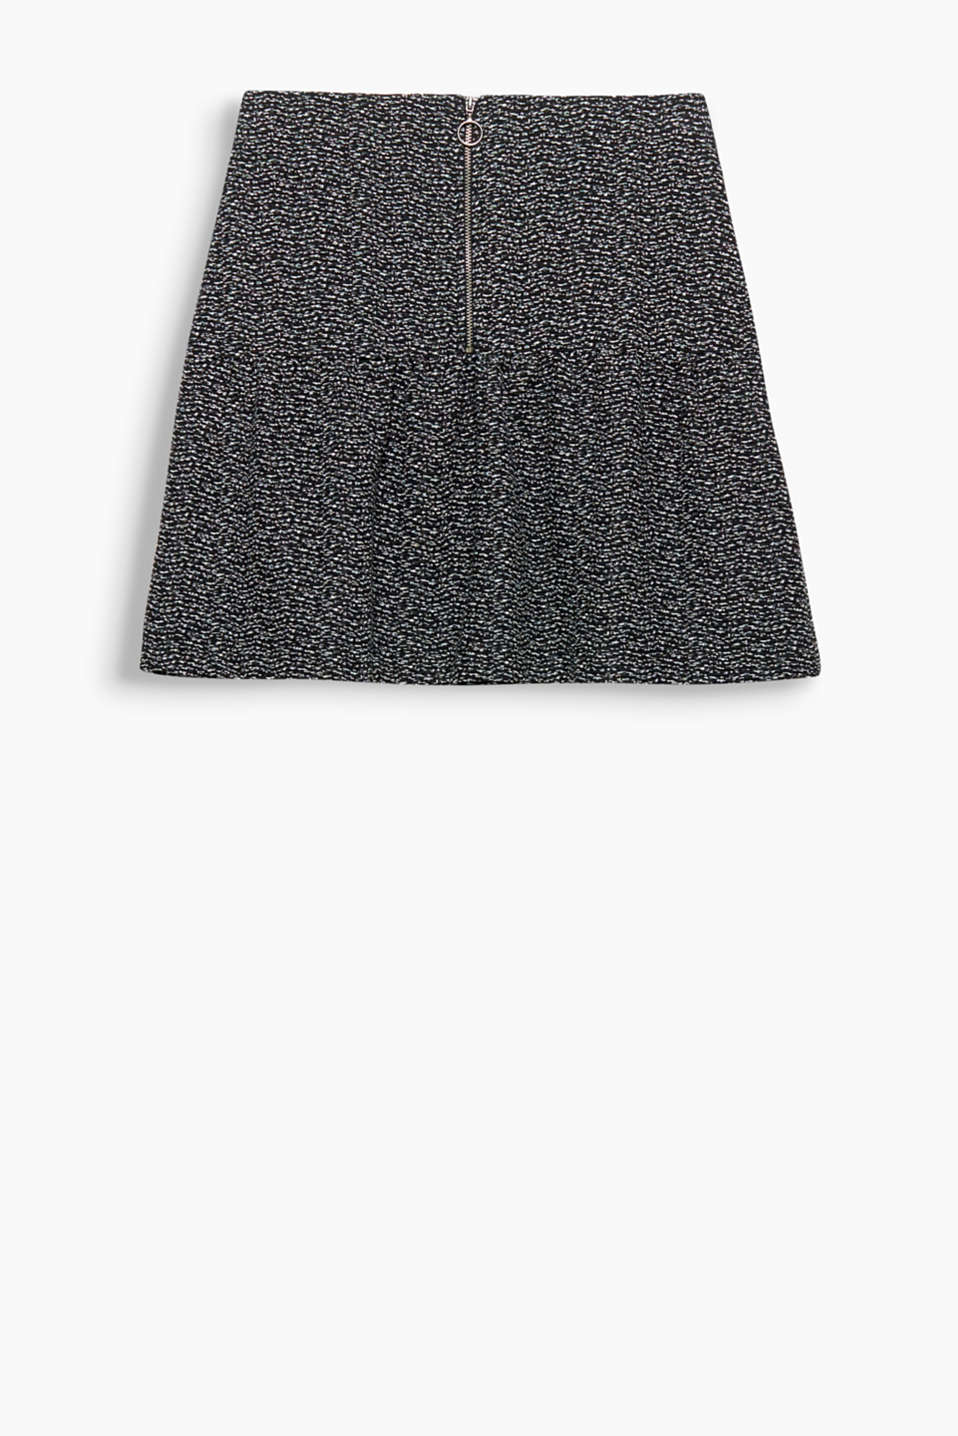 Mini-skirt with maximum effect! This mini-skirt pops with its textured look and its swirling shape.